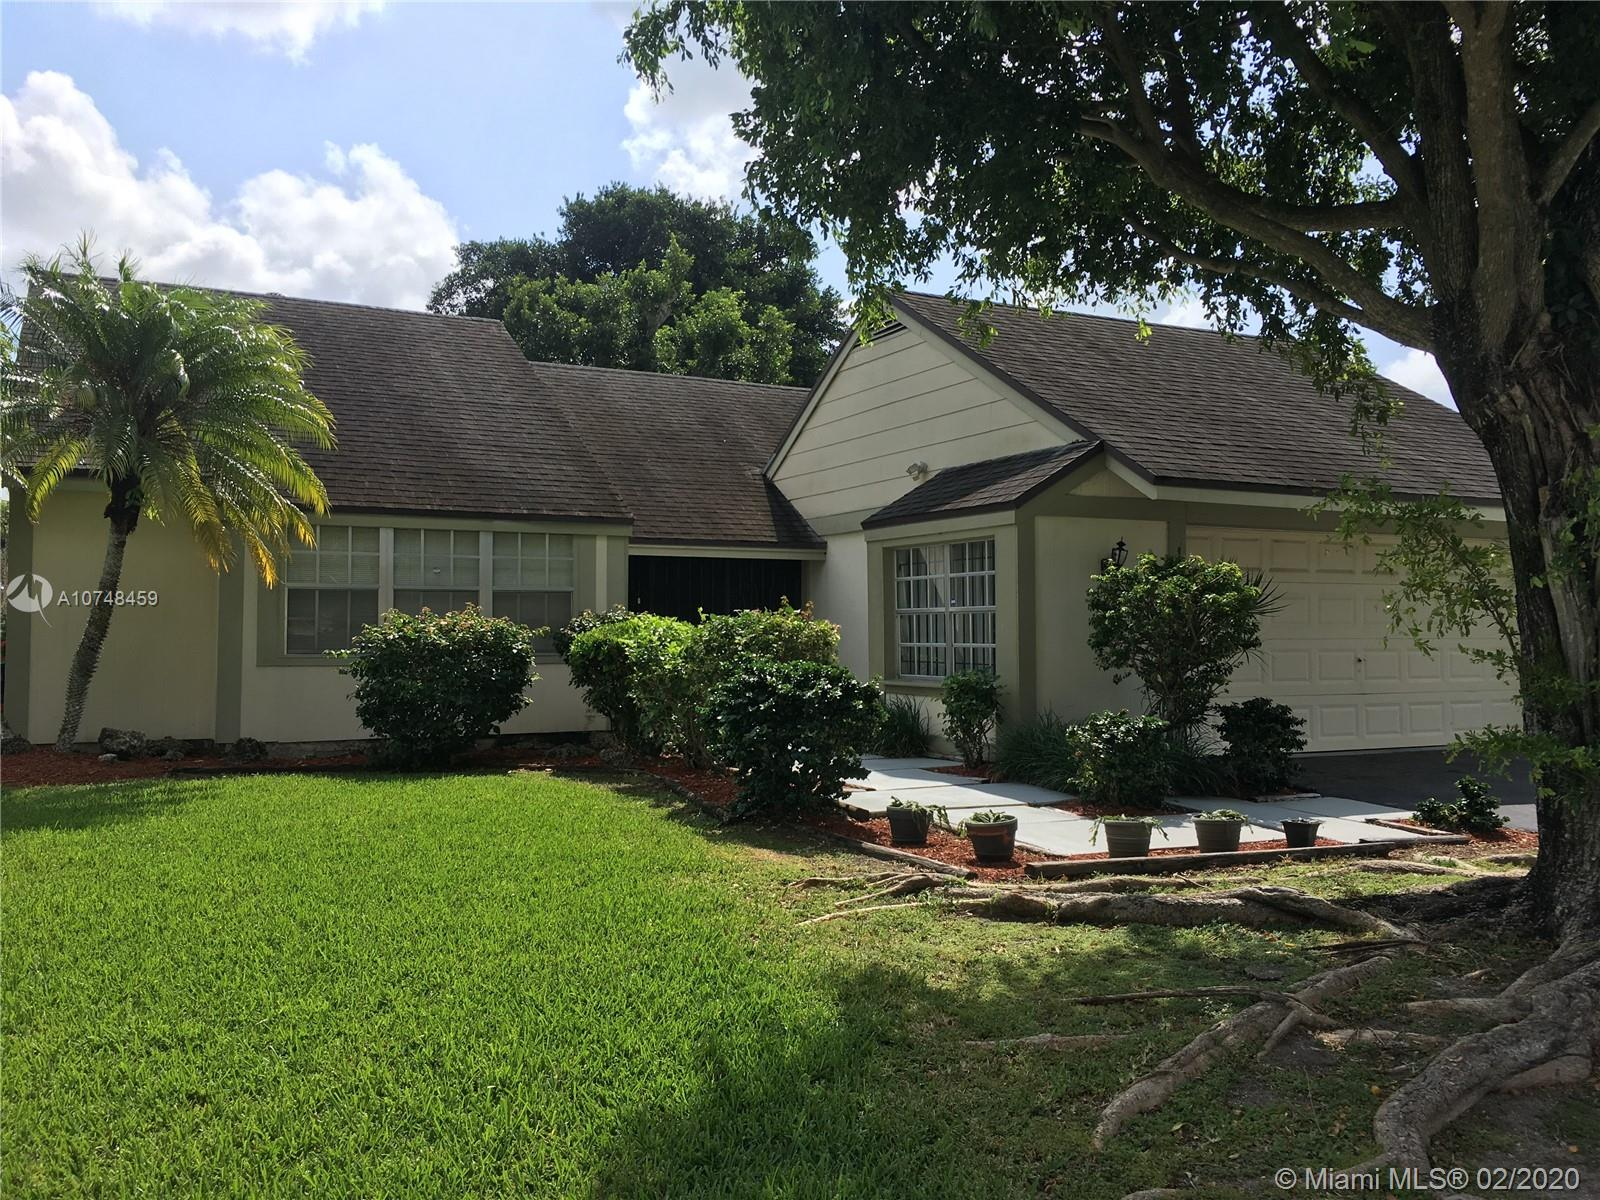 1203 Egret Rd, Homestead, FL 33035 - Homestead, FL real estate listing